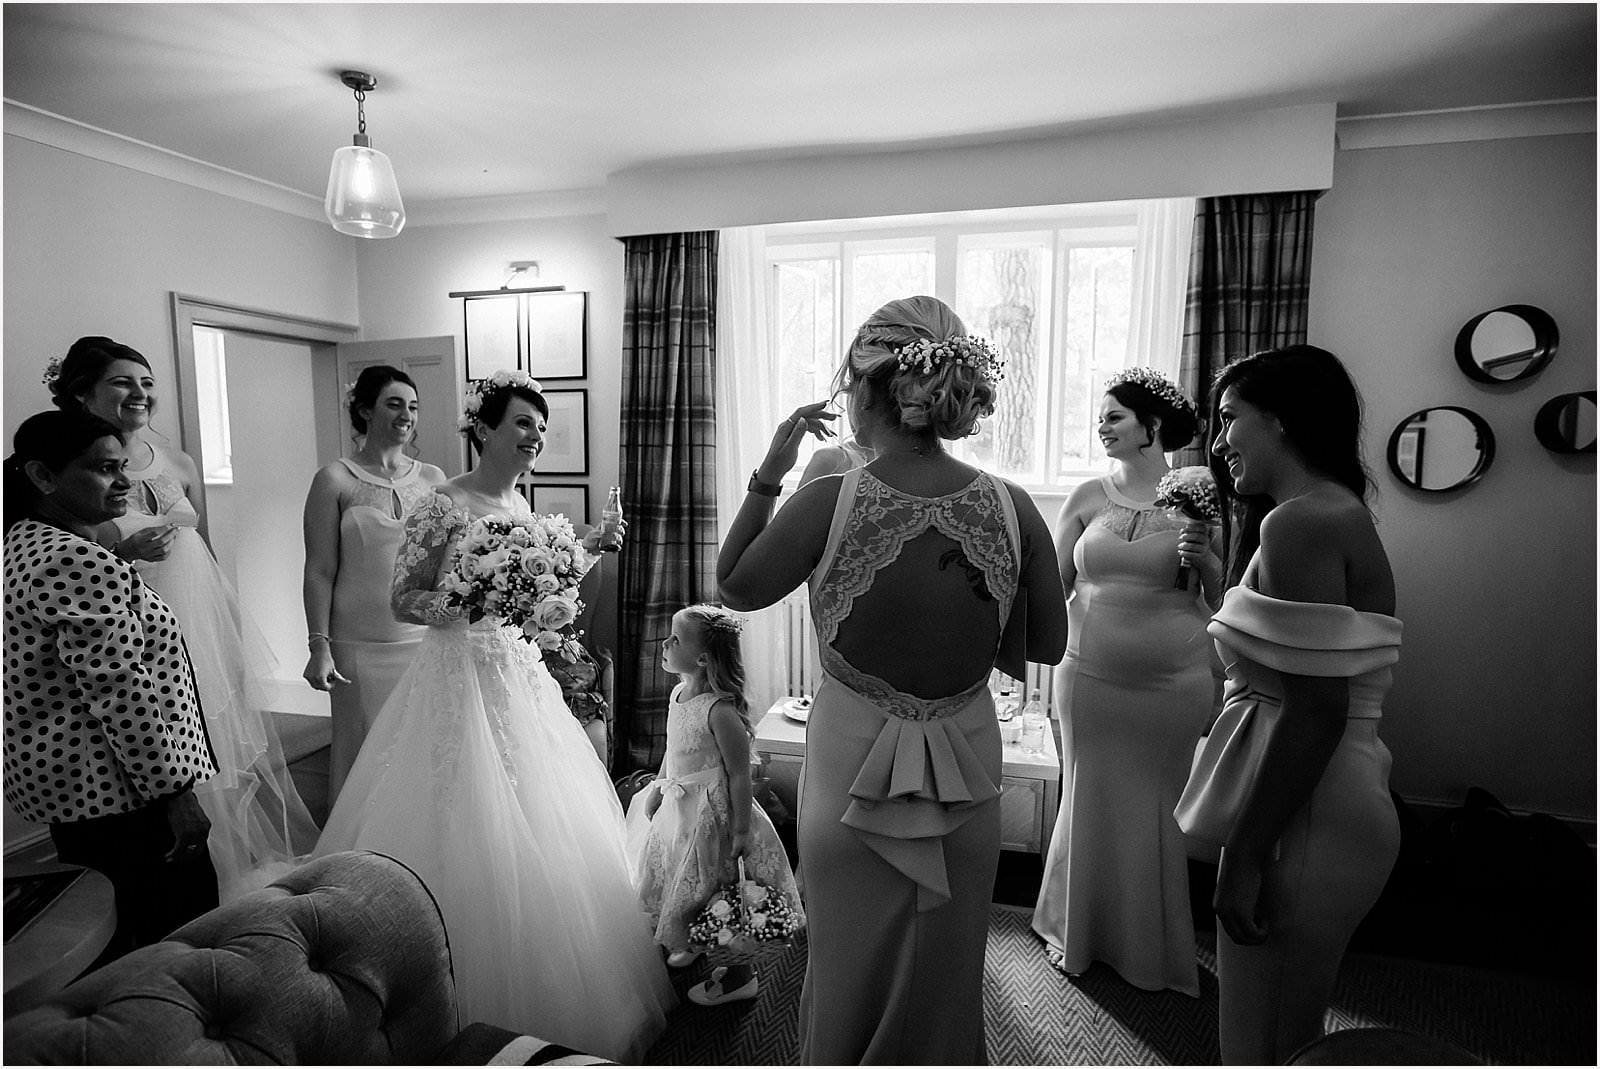 Wotton House Wedding - Justine + Rob's stunning wedding 14